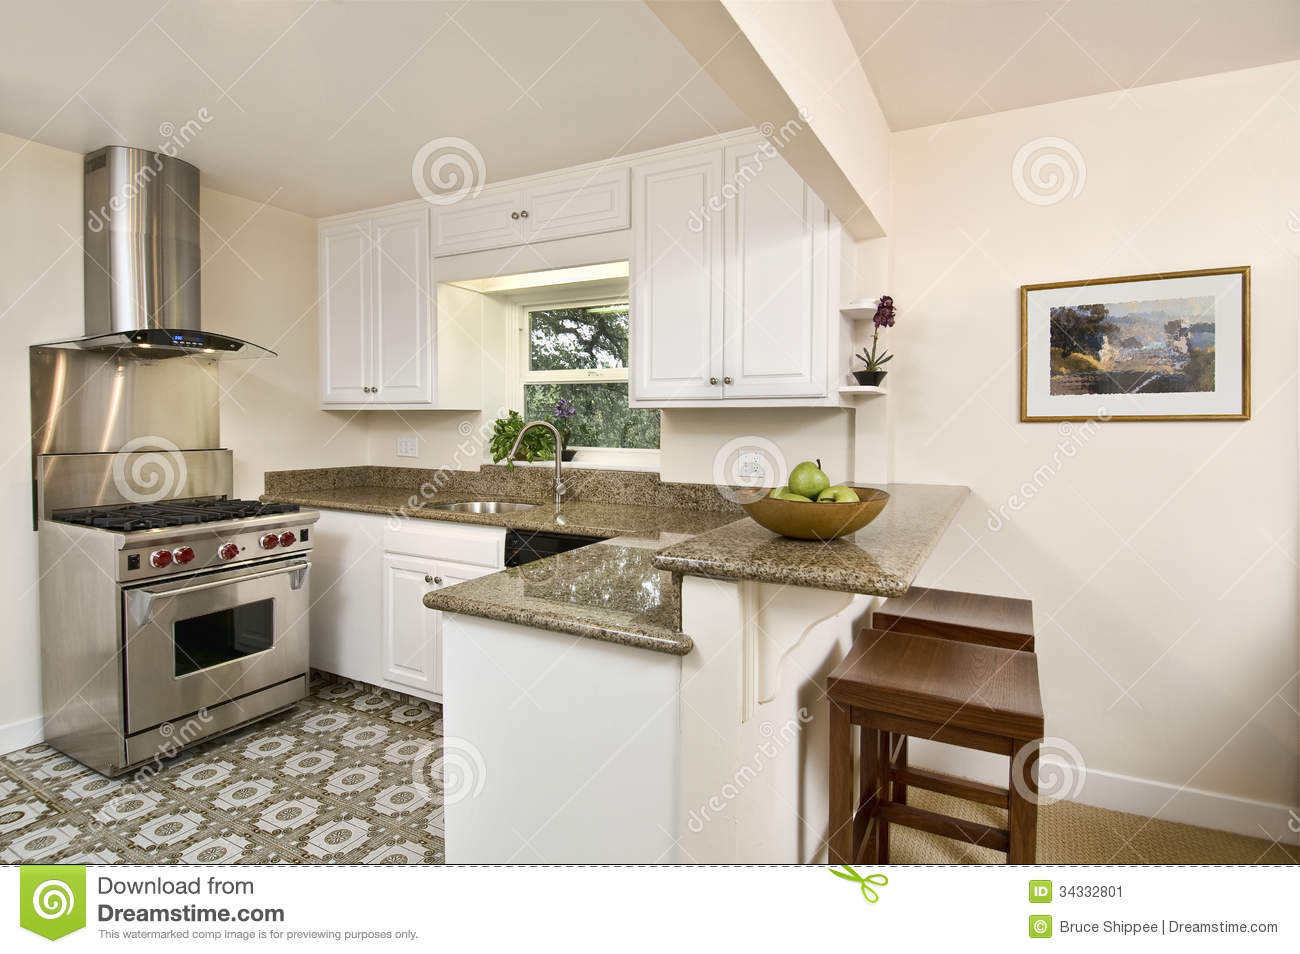 Small Simple Kitchen Stock Image Image Of Indoors